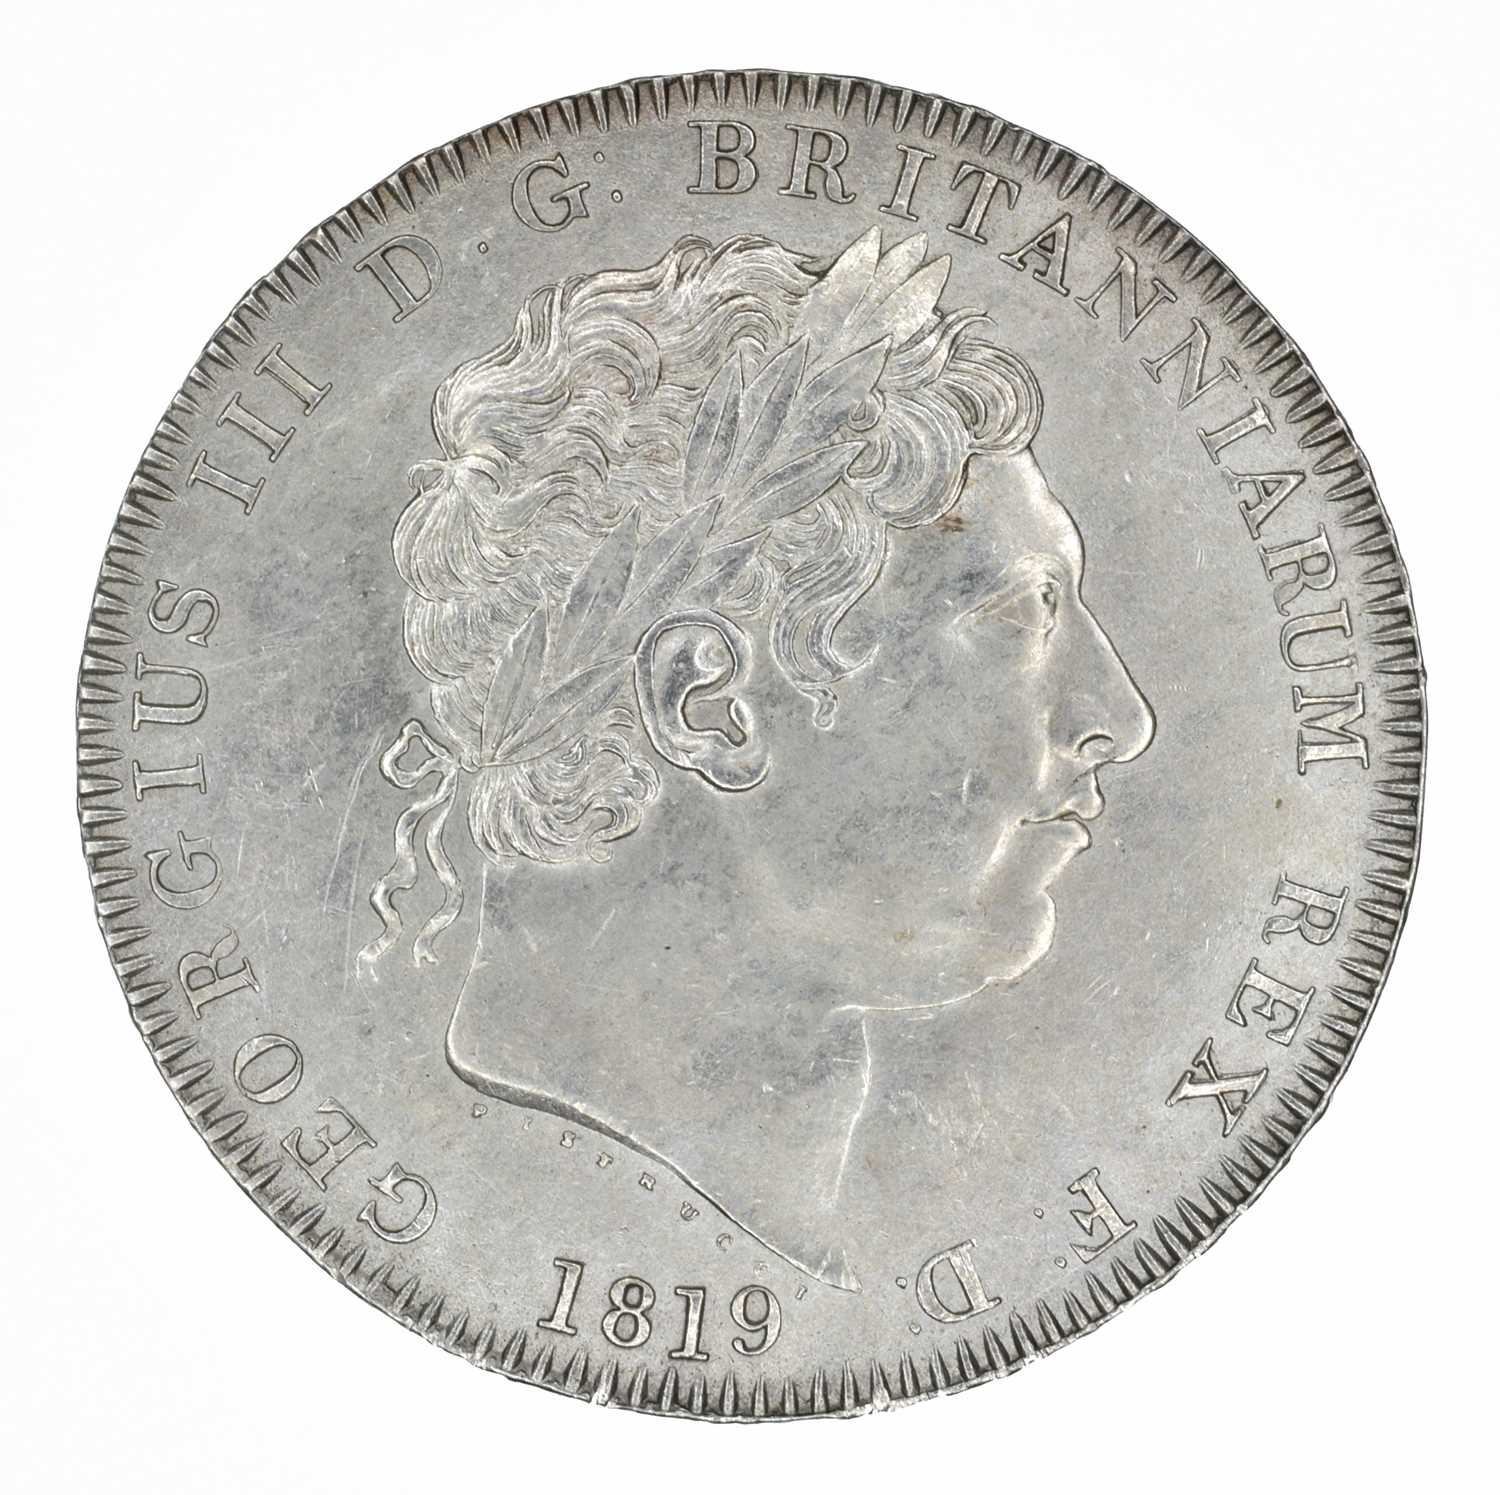 Lot 53 - King George III, Crown, 1819 LIX.